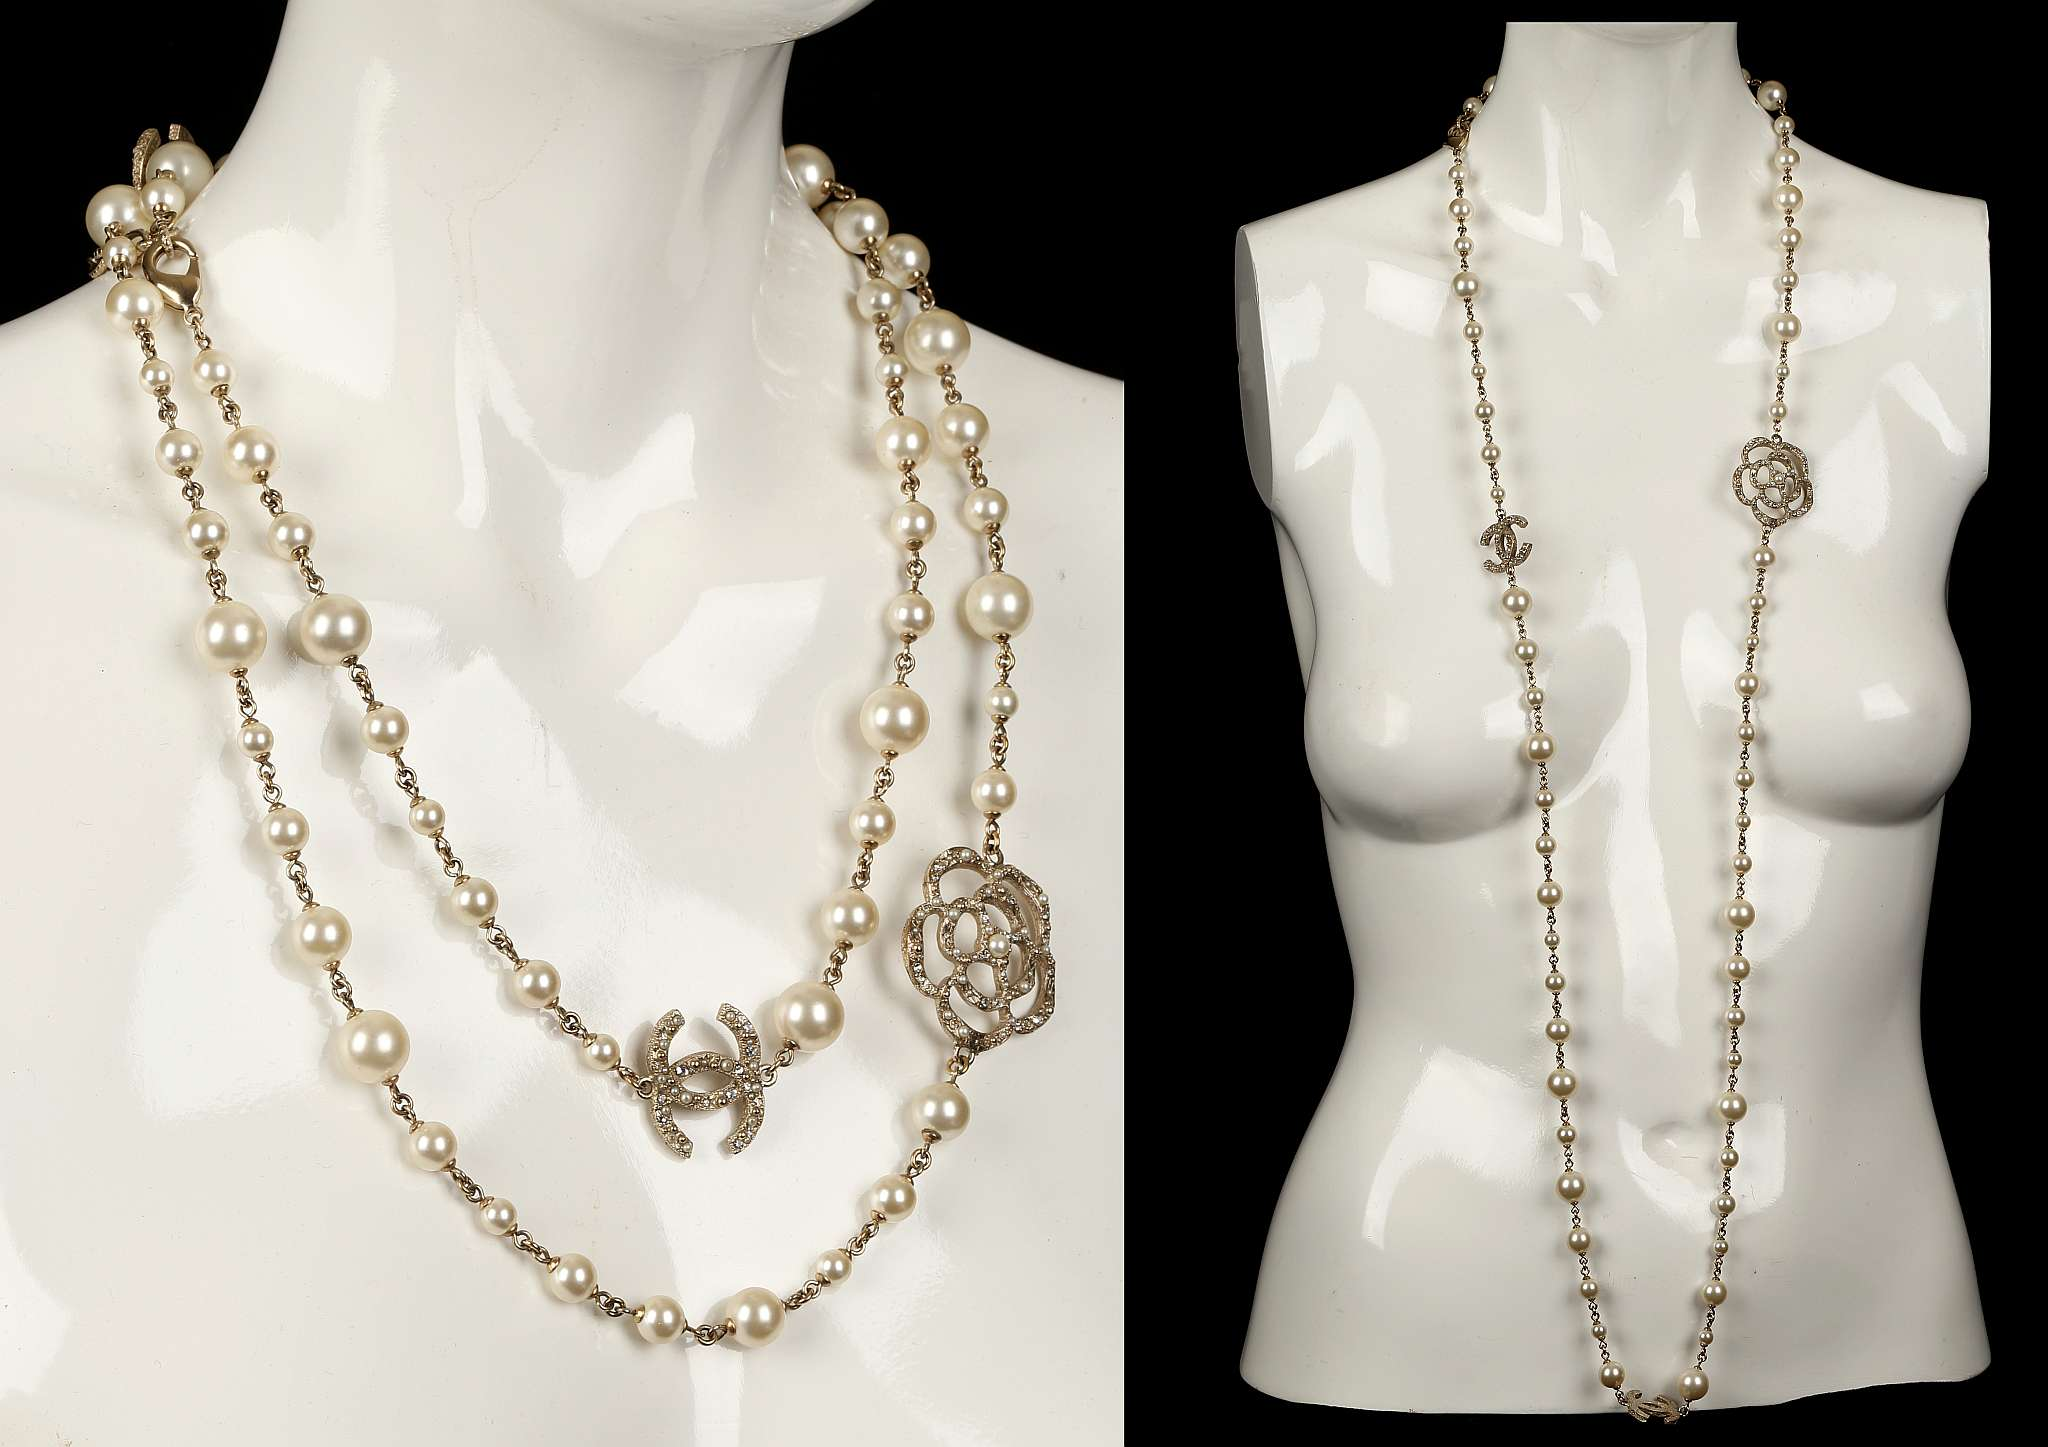 Lot 141  Chanel Long Faux Pearl Camellia Necklace, Dated 2014, Single Pearl  Strand